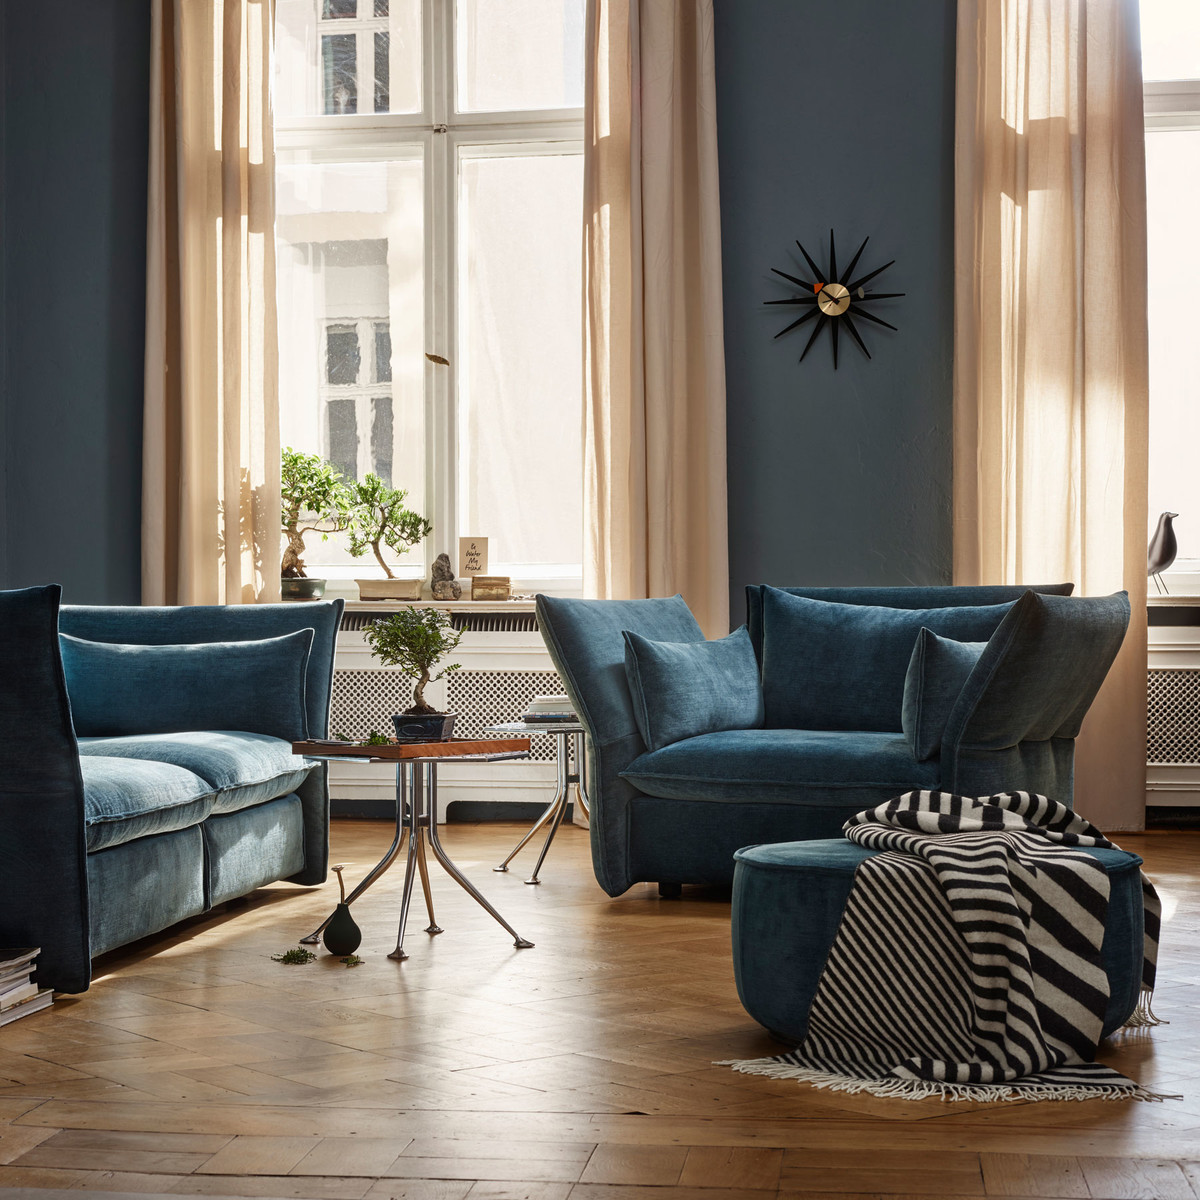 gallery-8764-for-VITRA084